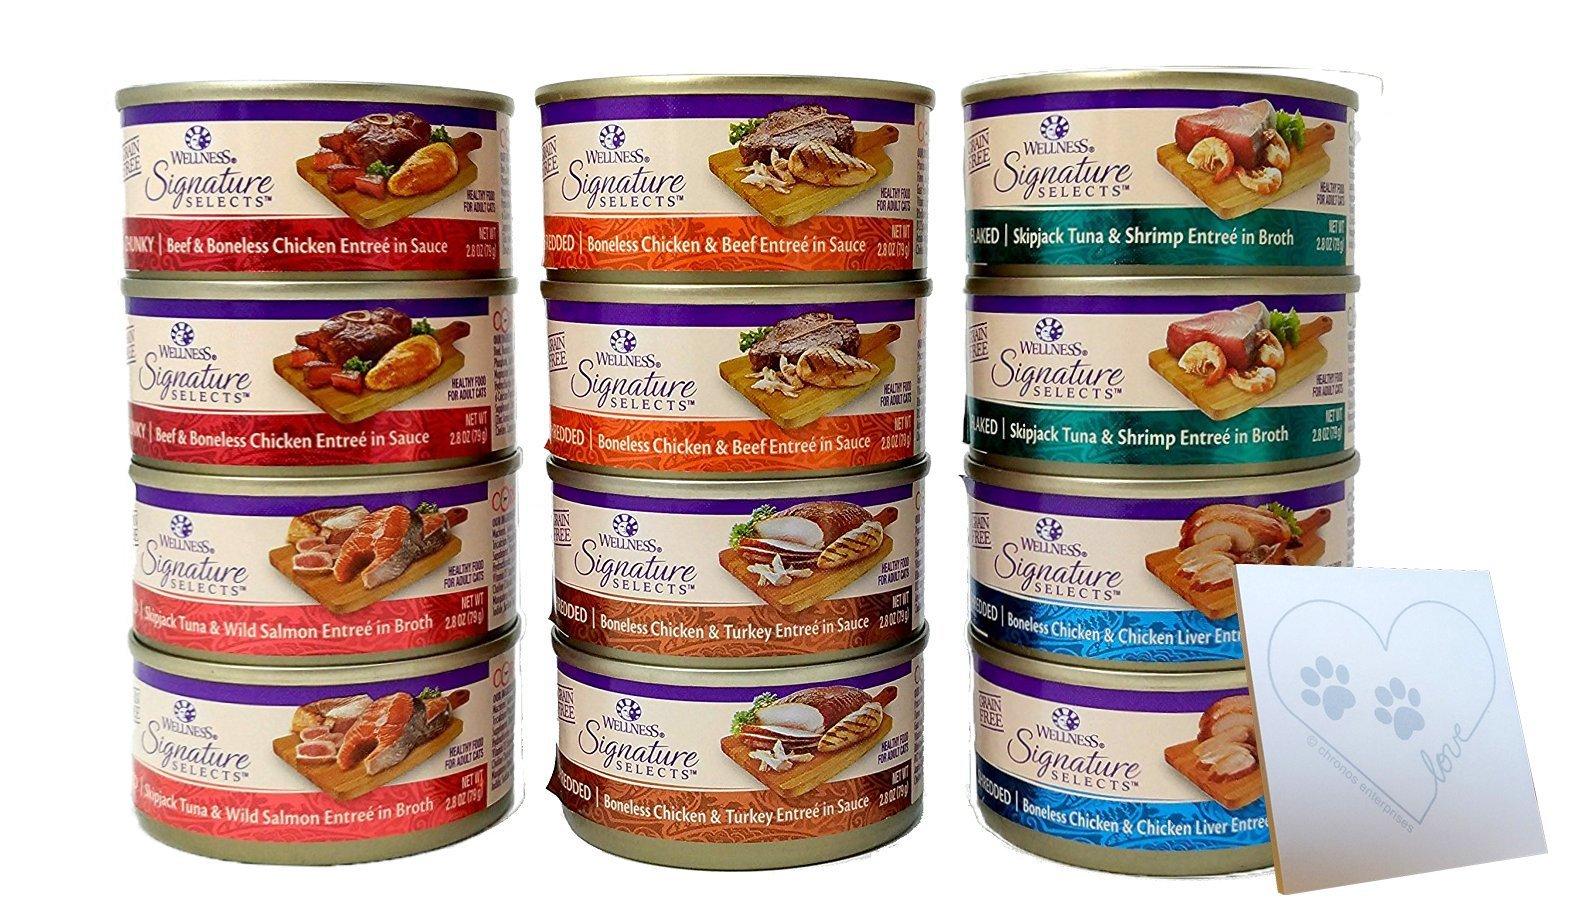 Wellness Core Natural Grain Free Signature Selects Wet Cat Food Variety Pack is the best Wellness Cat Food? Our review at cattime.com uncovers all pros and cons.